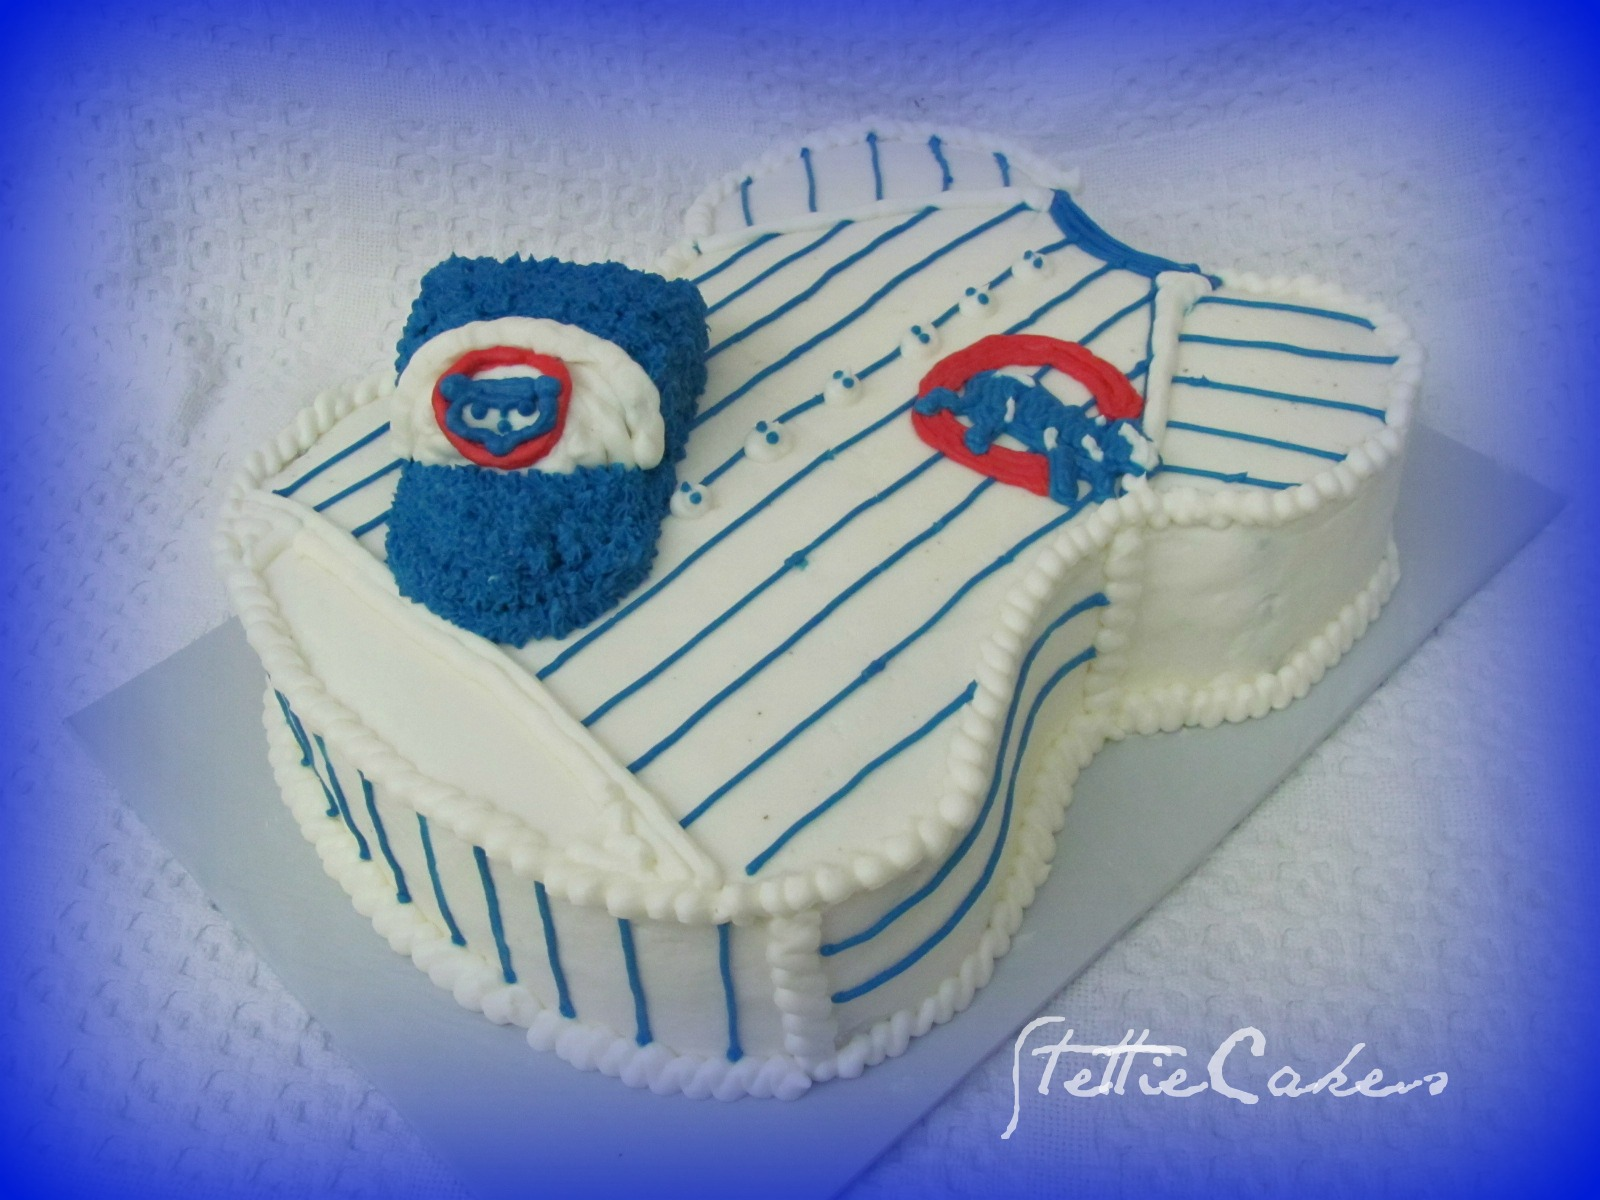 Stettie Cakes Cubs Baseball Jersey